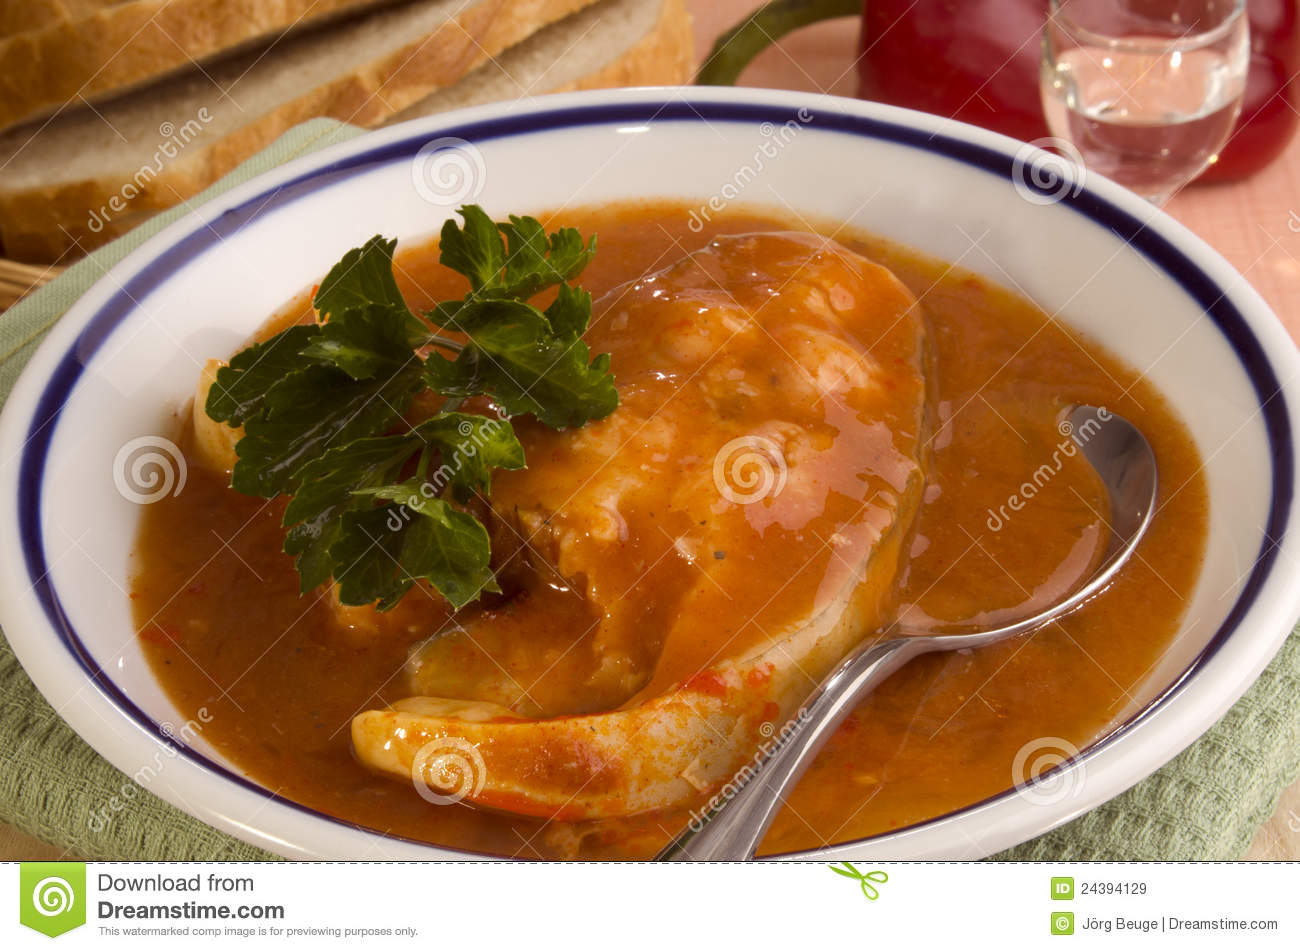 Hungarian Fish Soup Royalty Free Stock Images - Image: 24394129